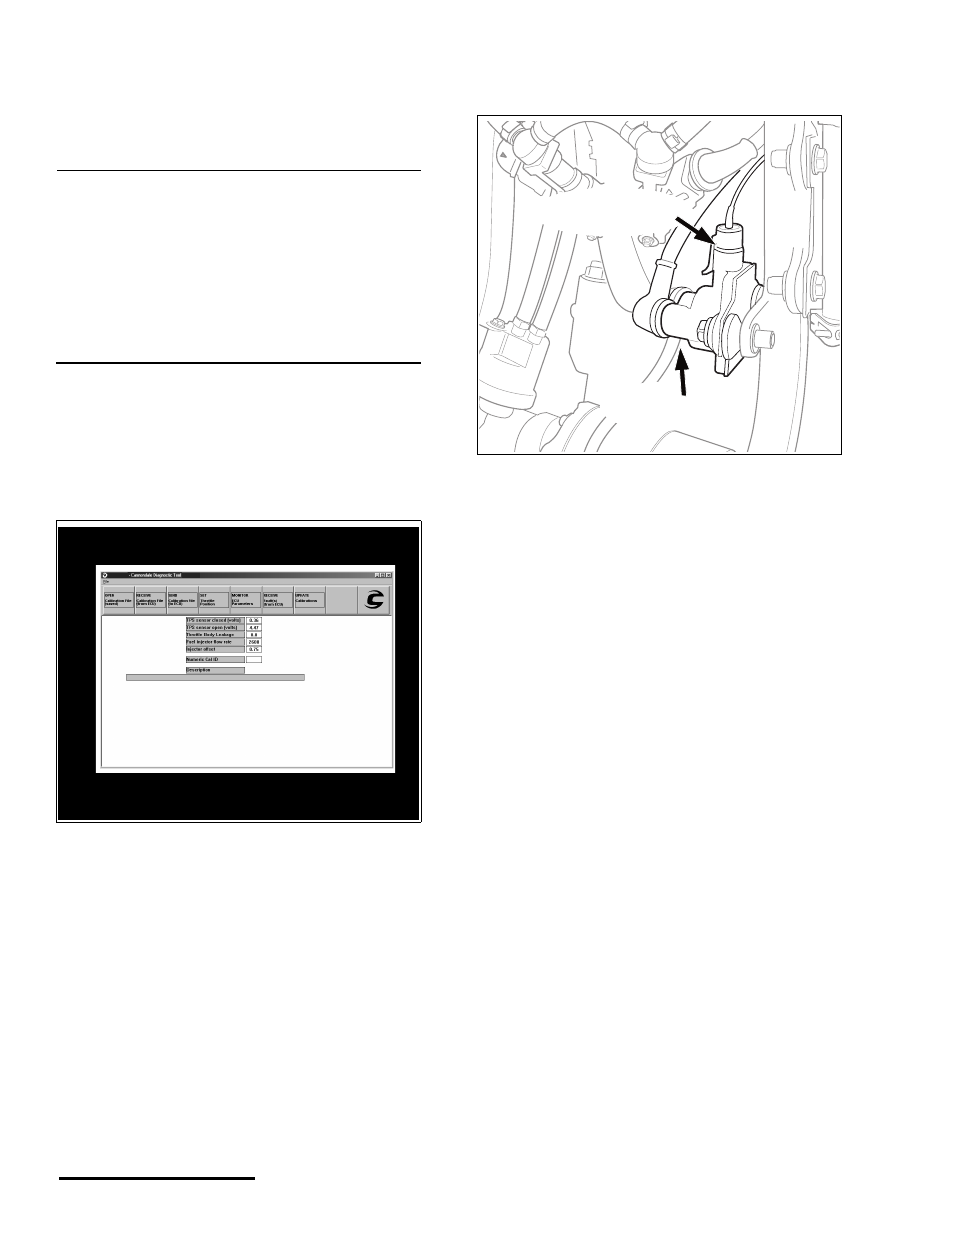 Instructions | Cannondale MC500 User Manual | Page 2 / 5